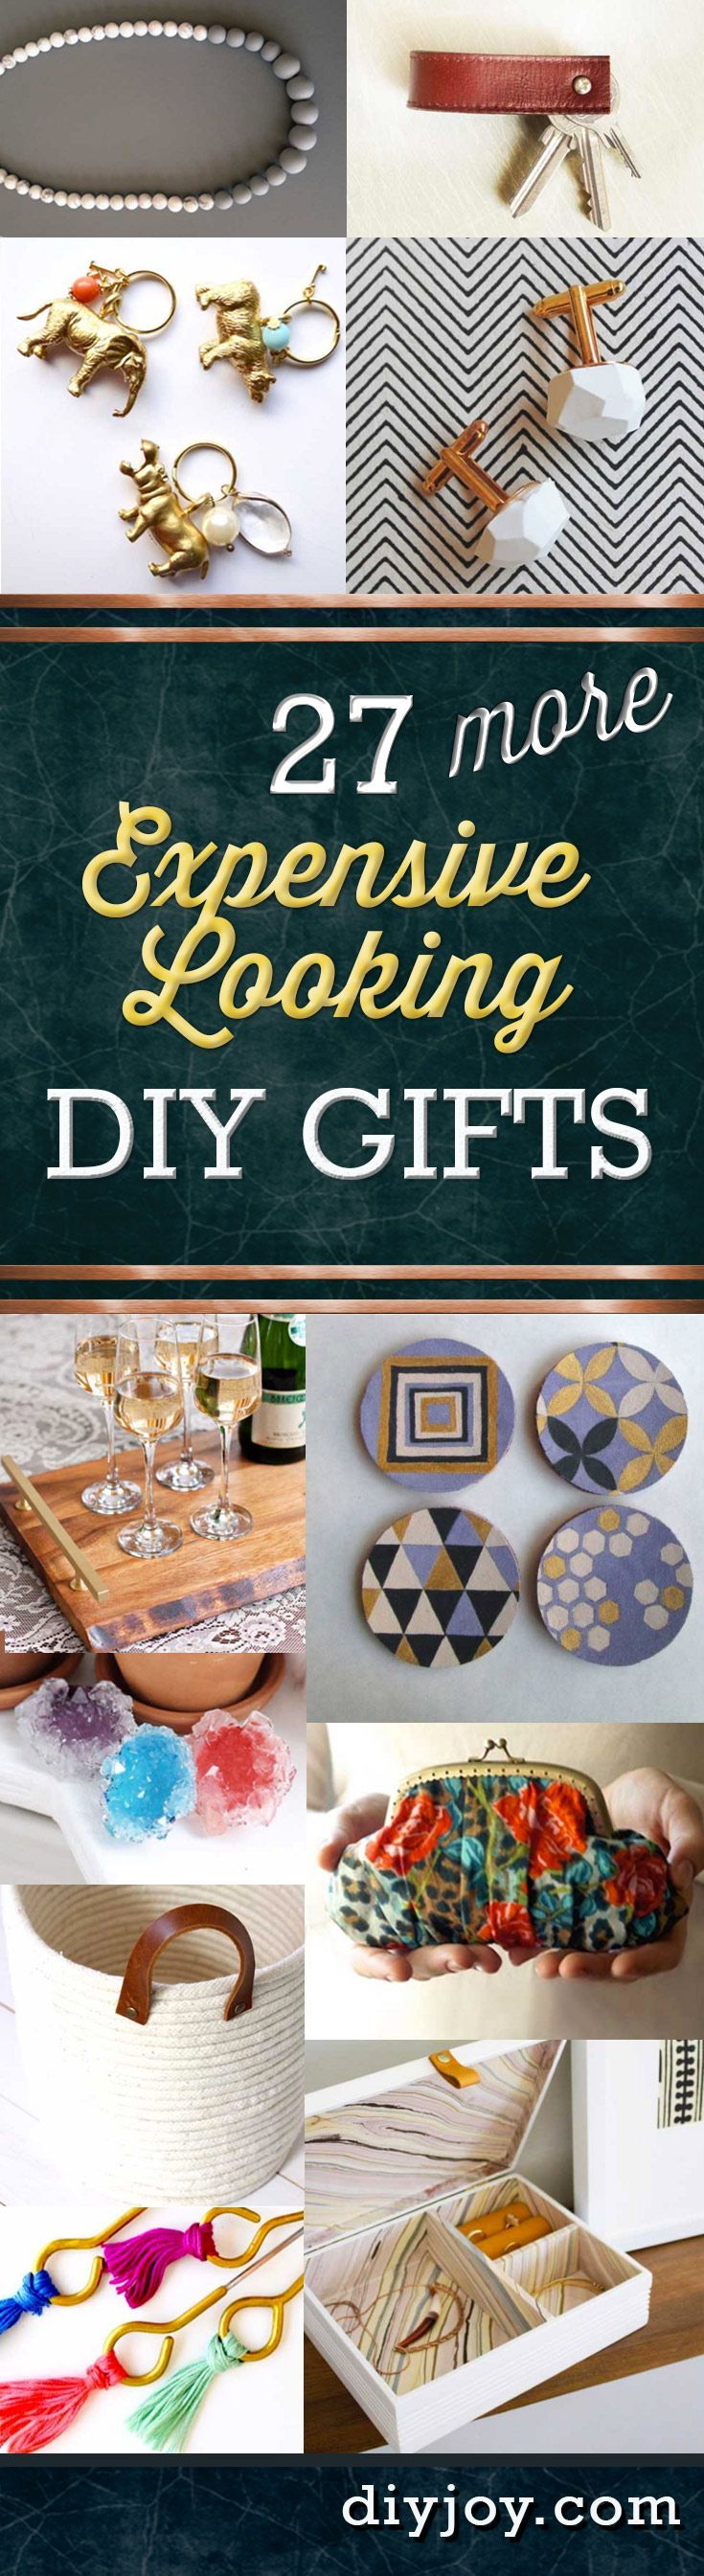 27 MORE Expensive Looking Inexpensive Gifts | Gift crafts, Dads ...